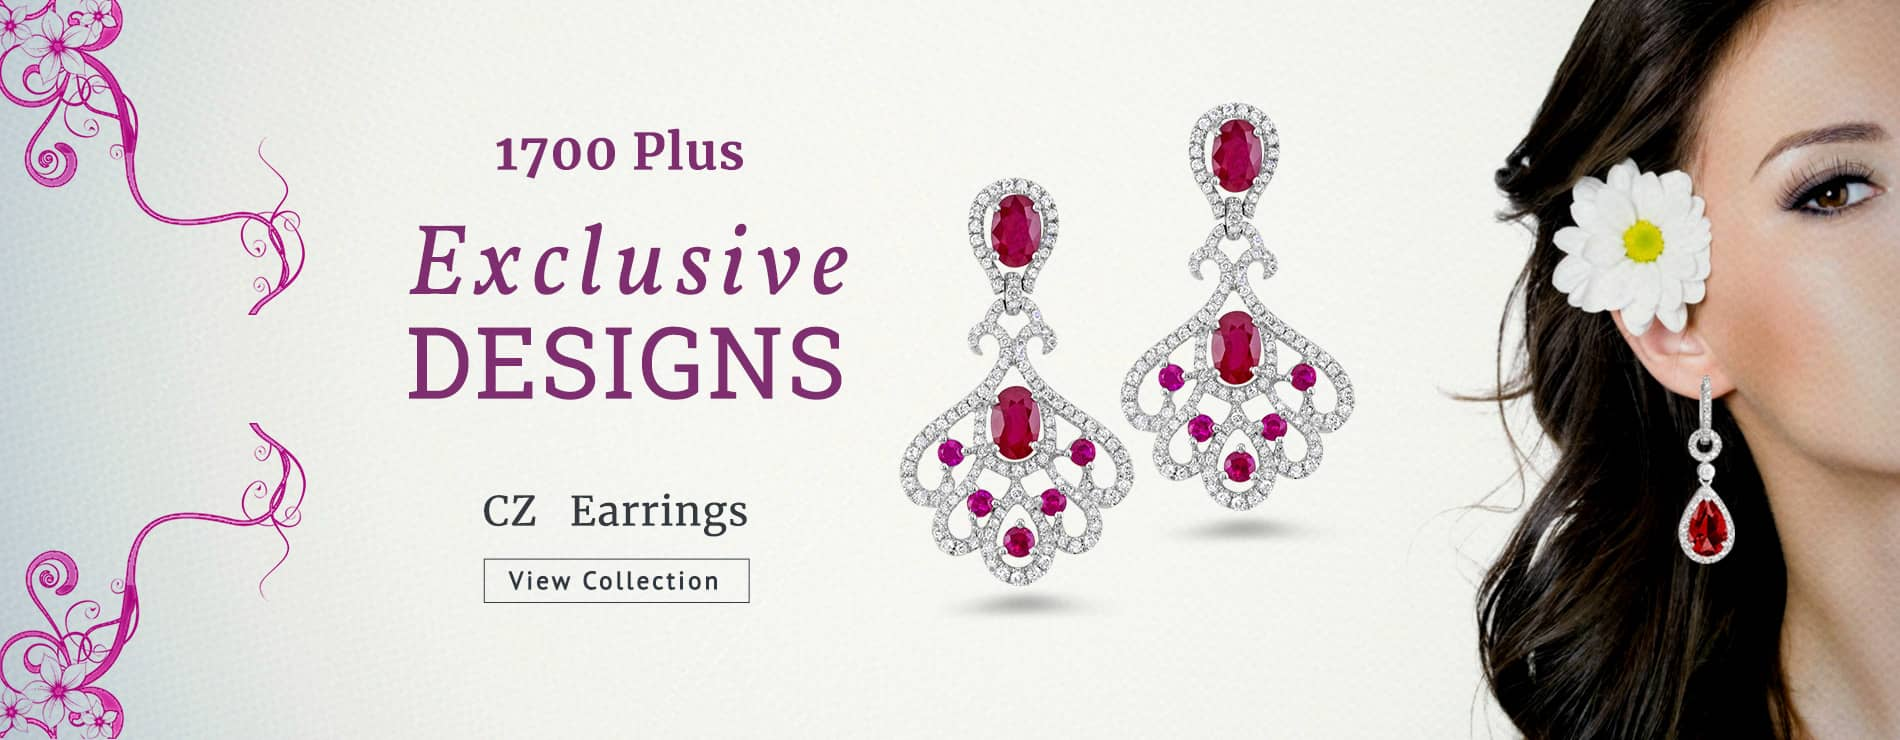 1700 Plus Exclusive Designs Cubic Zirconia Earrings